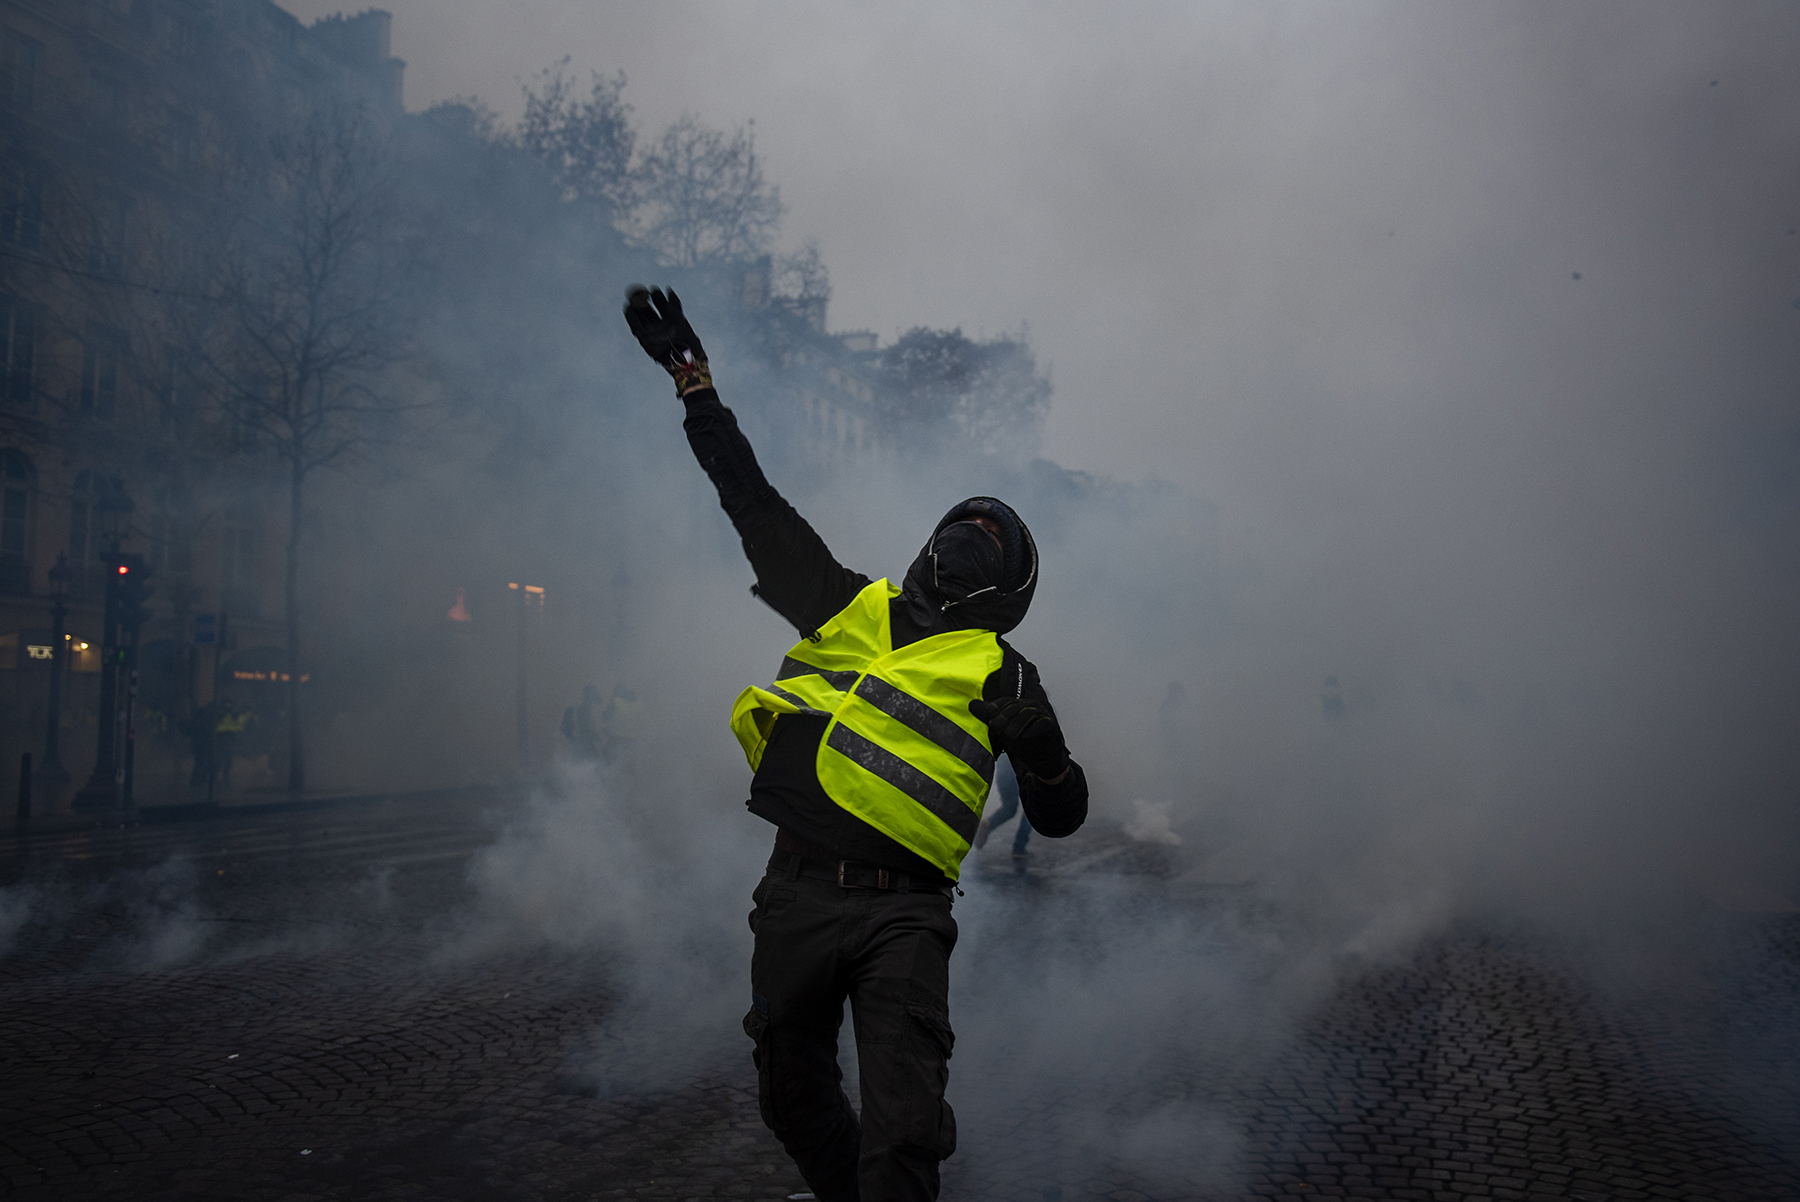 A 'Gilets Jaunes' ('Yellow Vest') protester throw a tear gas canister back at French riot police during a demonstration in the Champs Elysees Avenue in Paris, France, on December 15, 2018. Despite French government ministers appeals to the nationwide 'Gilets Jaunes' ('Yellow Vest') protests to stop in the wake of the Strasbourg attack that killed three people on December 11, protesters took the streets of France for the fifth consecutive Saturday. The 'Gilets Jaunes' ('Yellow Vest') movement - began on November 17, 2018 and inspired by opposition to a new fuel tax - has absorbed a wide range of anti-government sentiment and wrecked Paris and other French cities for over a month.